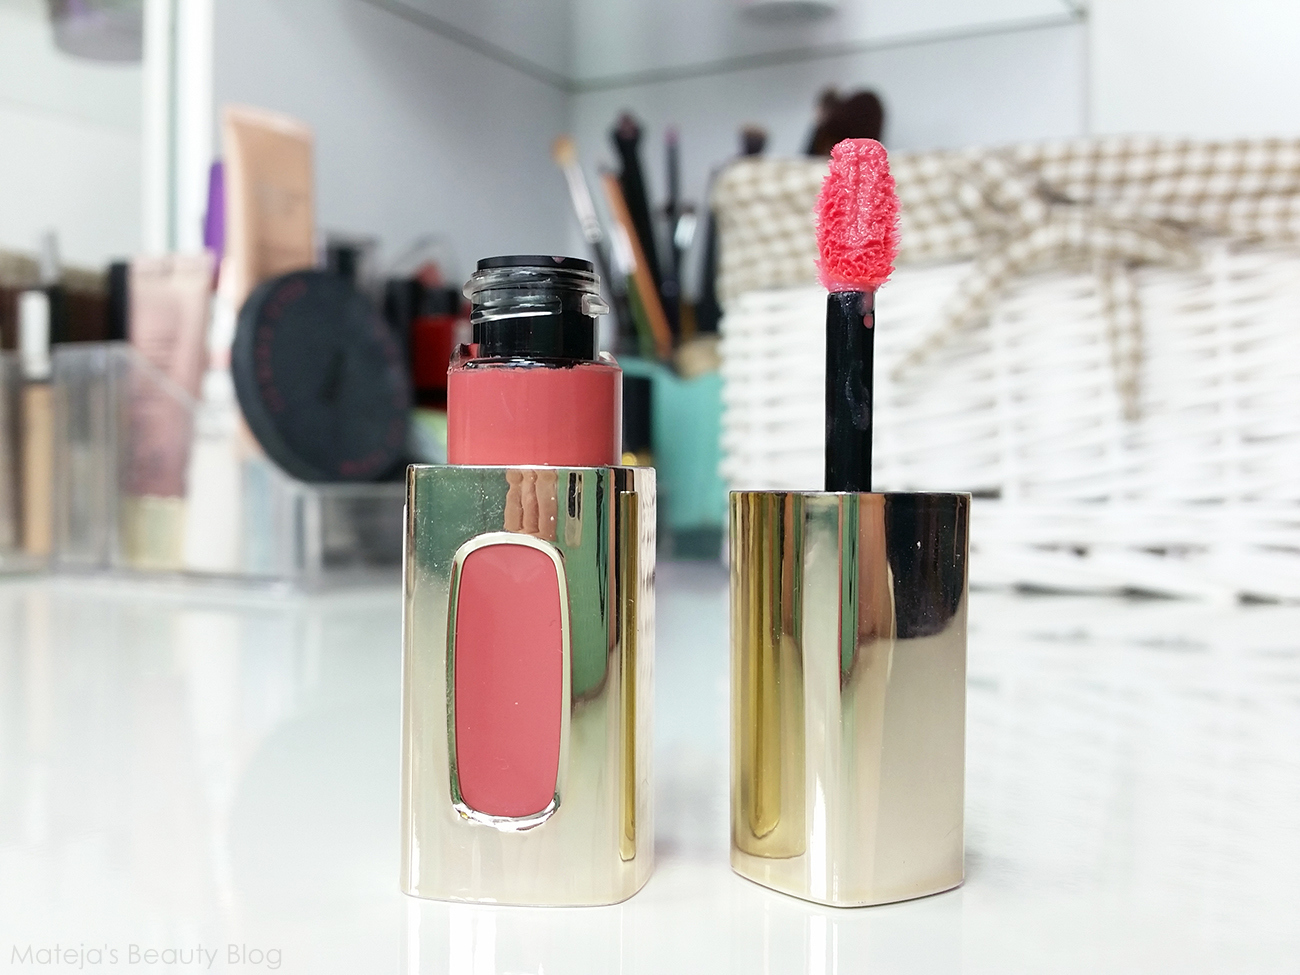 New In 27 And A Surprise Giveaway Matejas Beauty Blog Bloglovin Krezi Kamis 26 Bourjois Rouge Edition Velvet Lipstick Loreal Lextraordinaire Liquid 101 Rose Melody Im Huge Fan Of These Despite The Hefty Price Tag For Drugstore Gloss